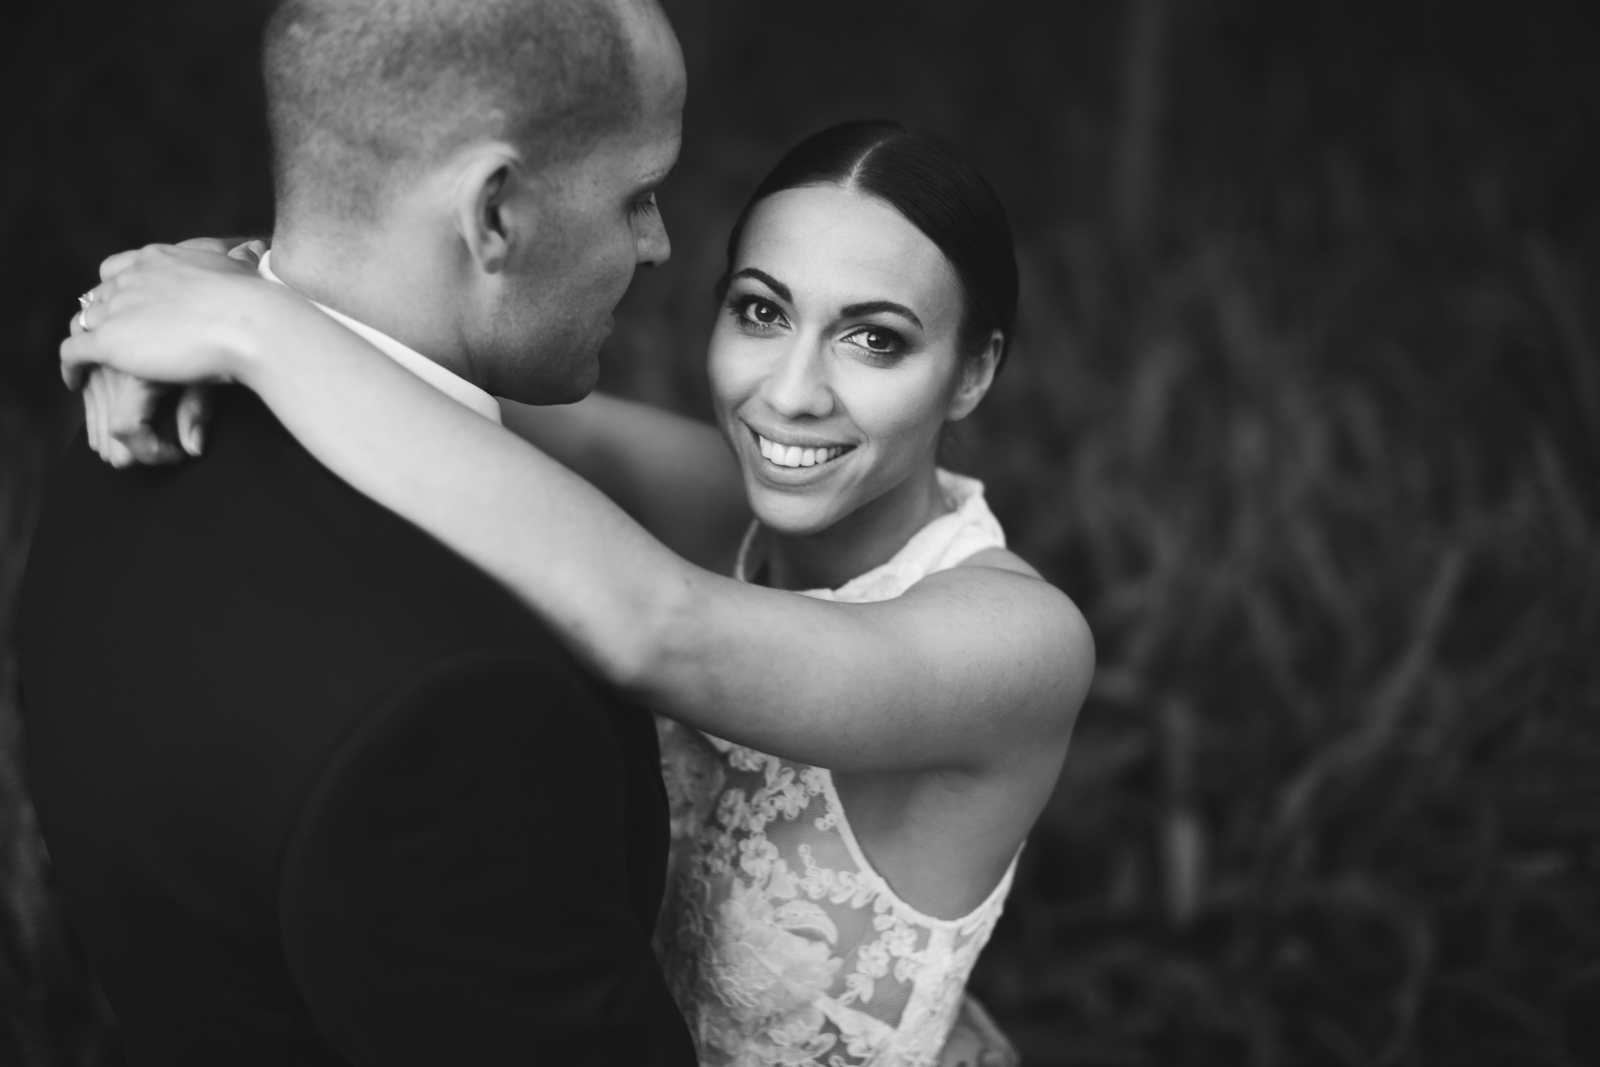 187-Bec_Kilpatrick_Photography_Bianca_and_Chris_GoldCoast_Wedding_DancingATP_787122